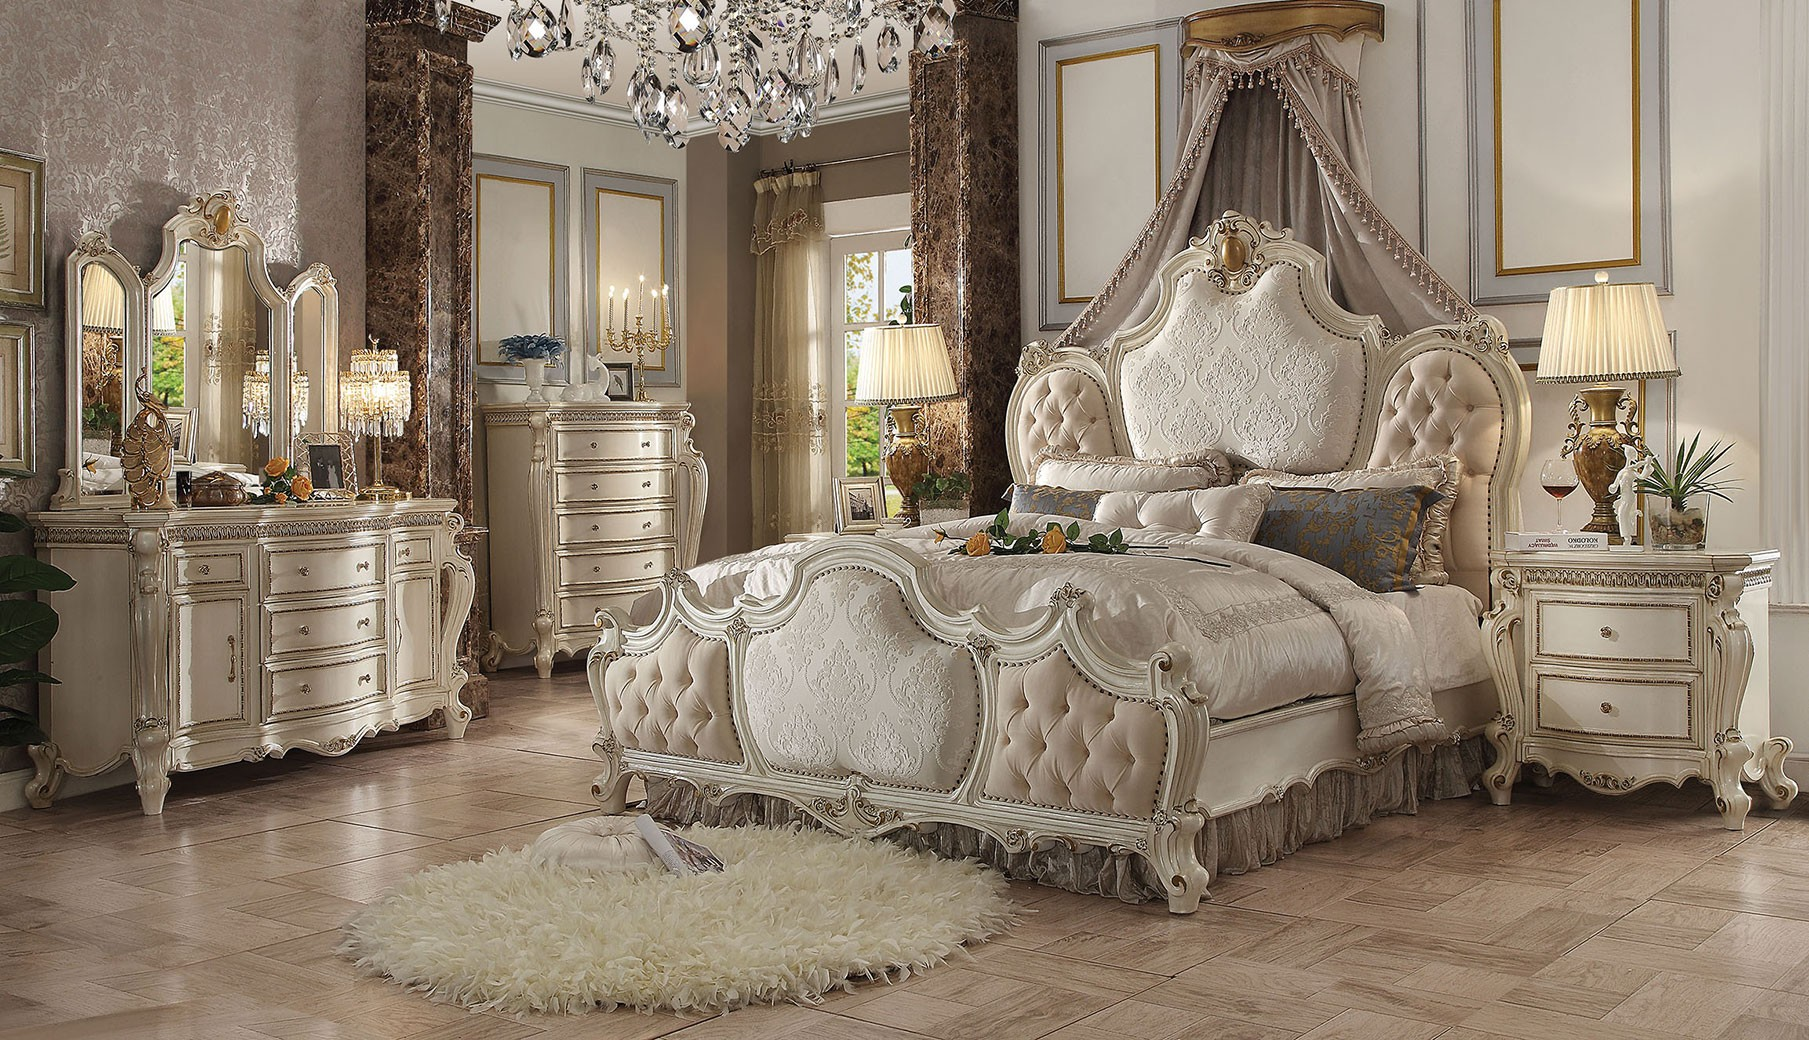 26880 Acme Picardy Bedroom Set Collection Fabric Antique